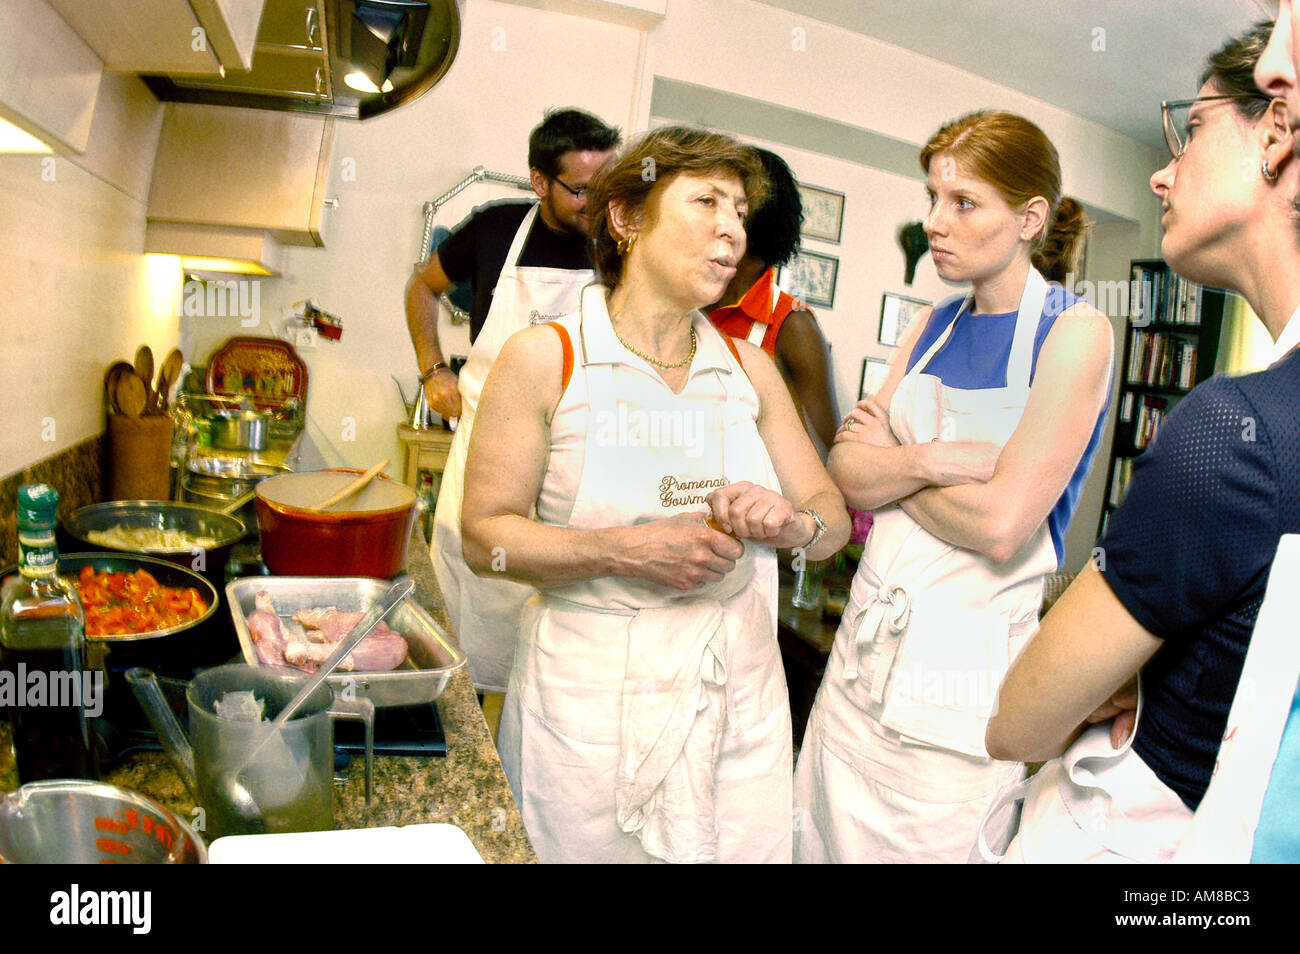 Education PARIS FRANCE American Students in Cooking class 'Promenades Gourmandes' with Instructor 'Paule Caillat' Teacher - Stock Image